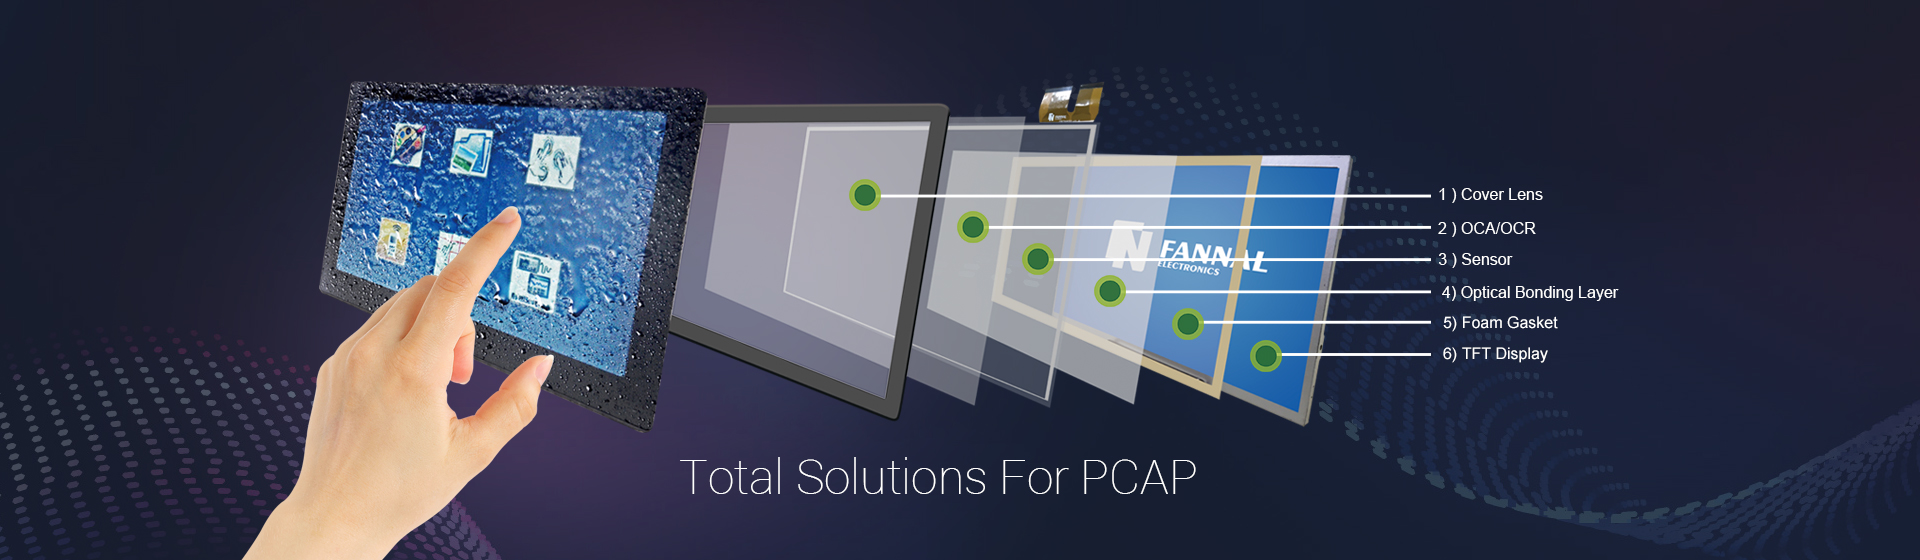 Total solutions for PCAP